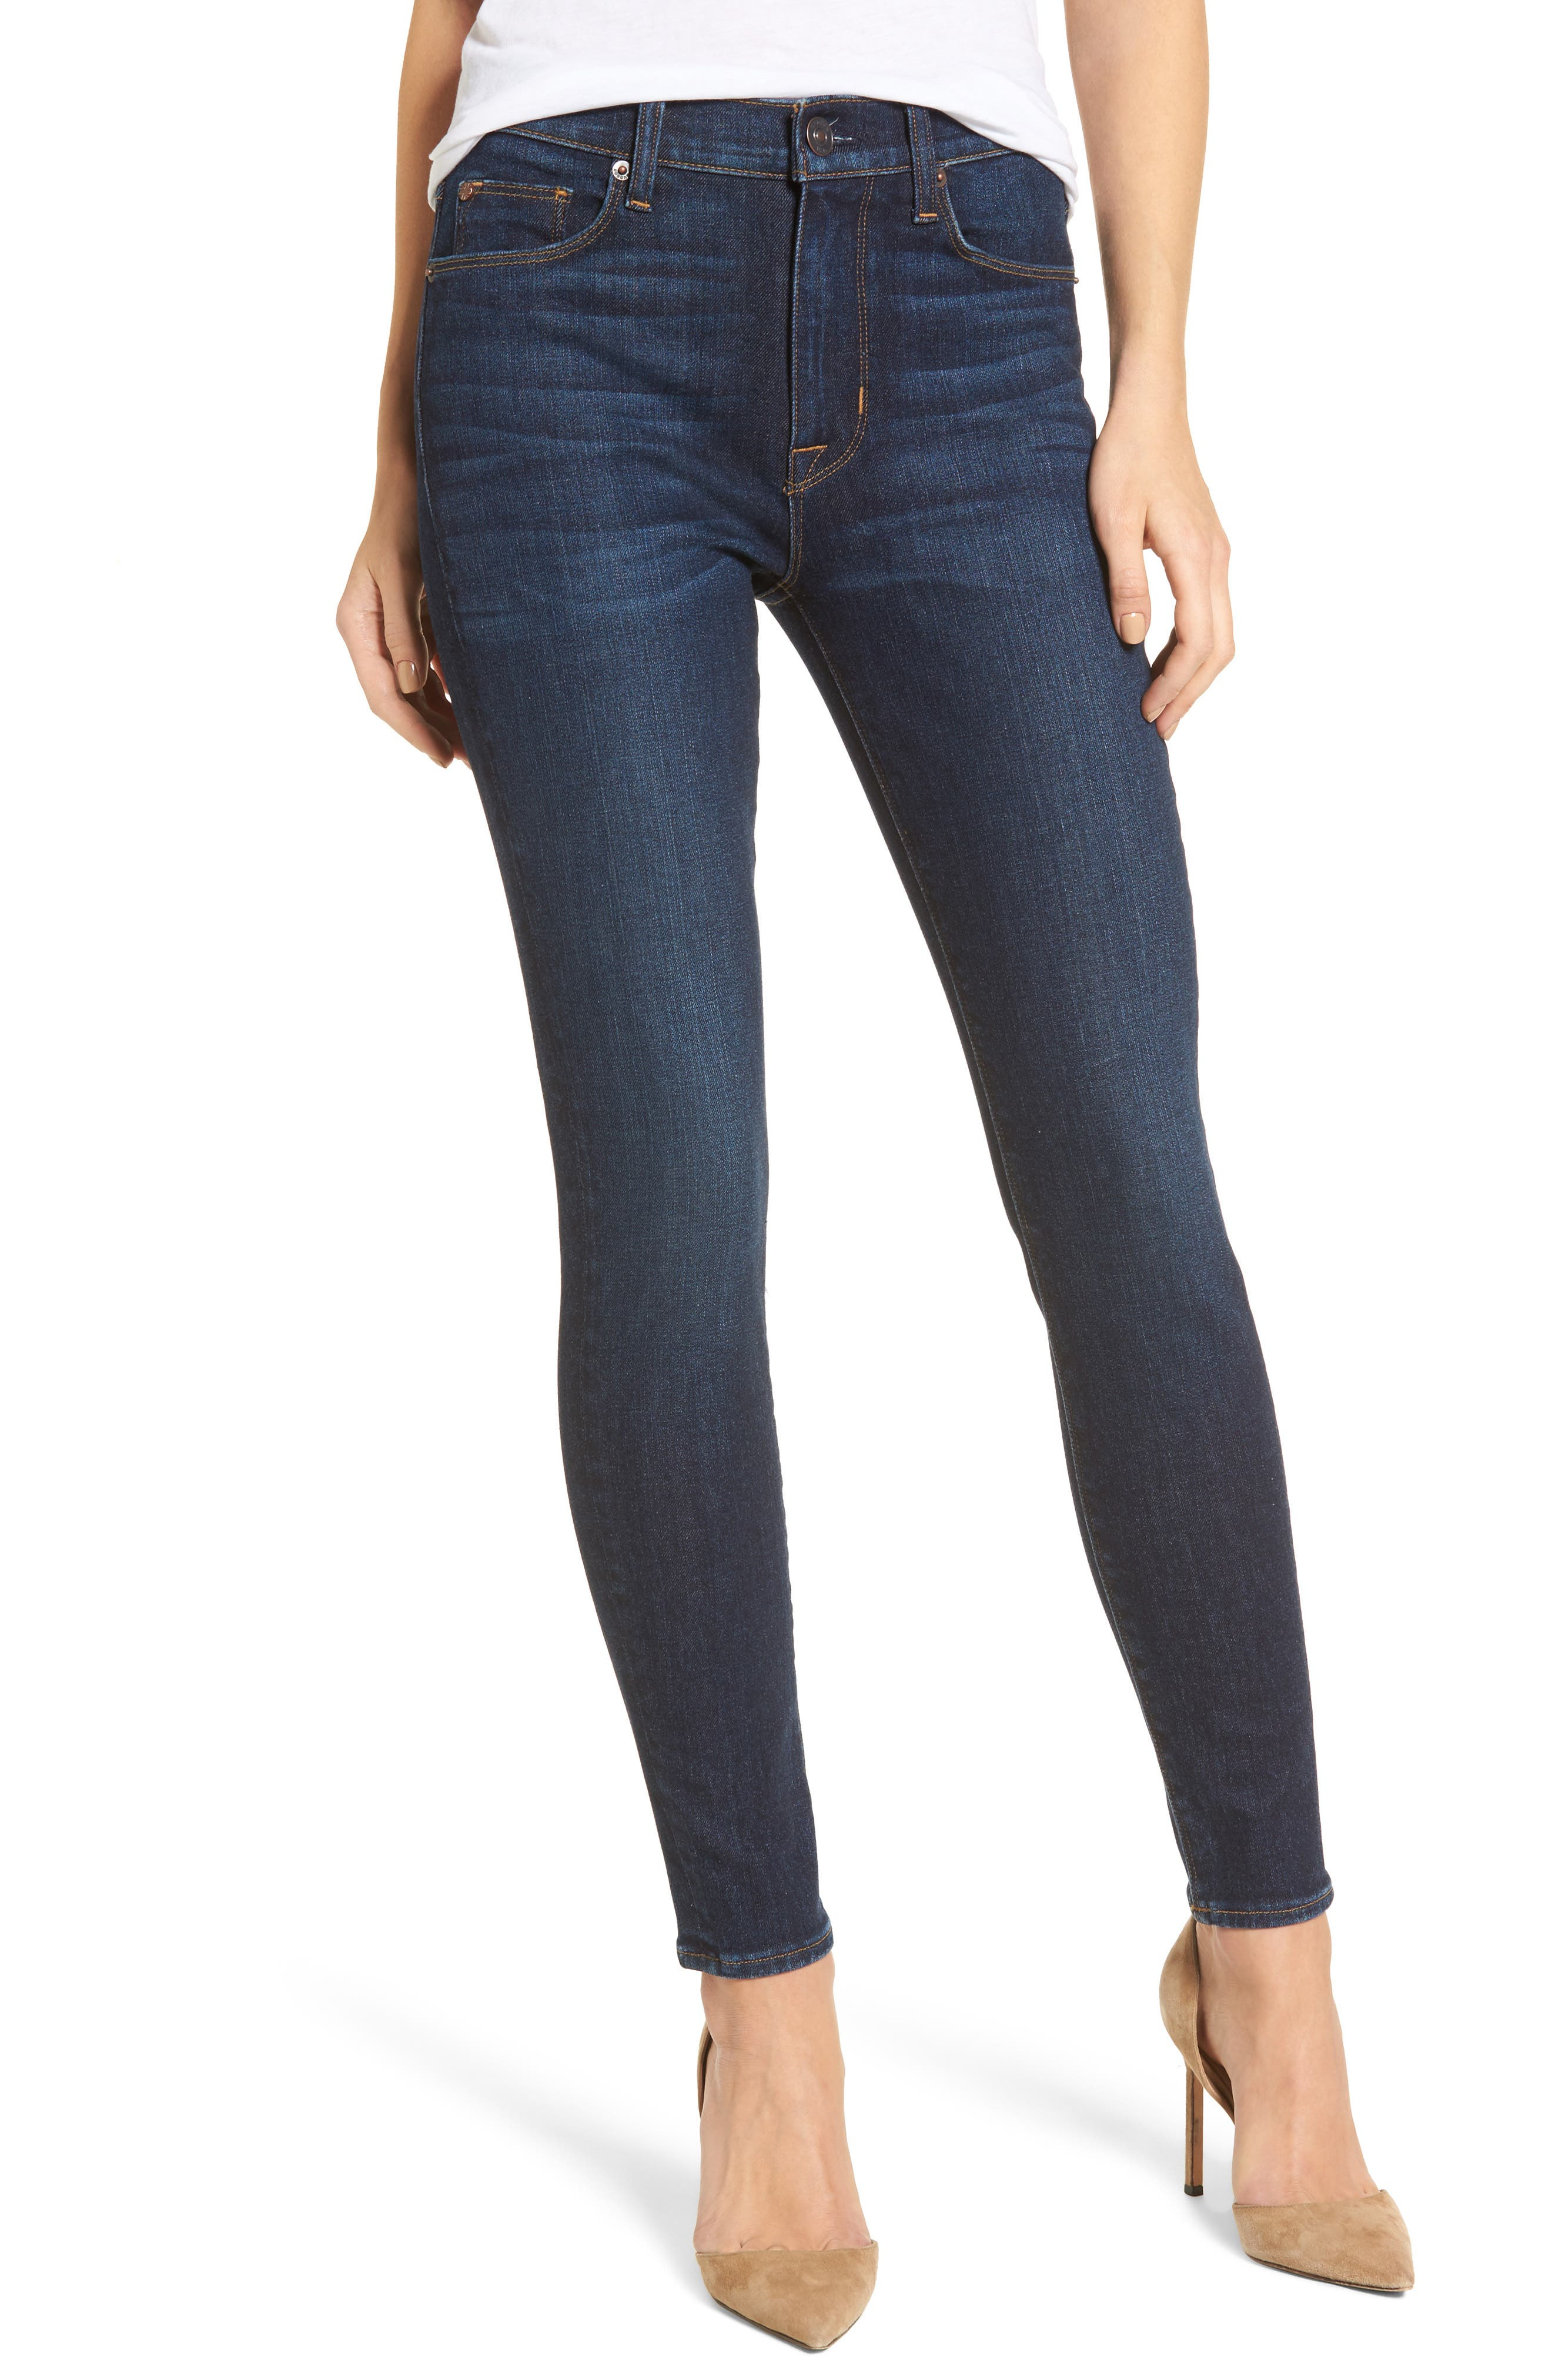 Barbara High Waist Ankle Super Skinny Jeans,                             Main thumbnail 1, color,                             402